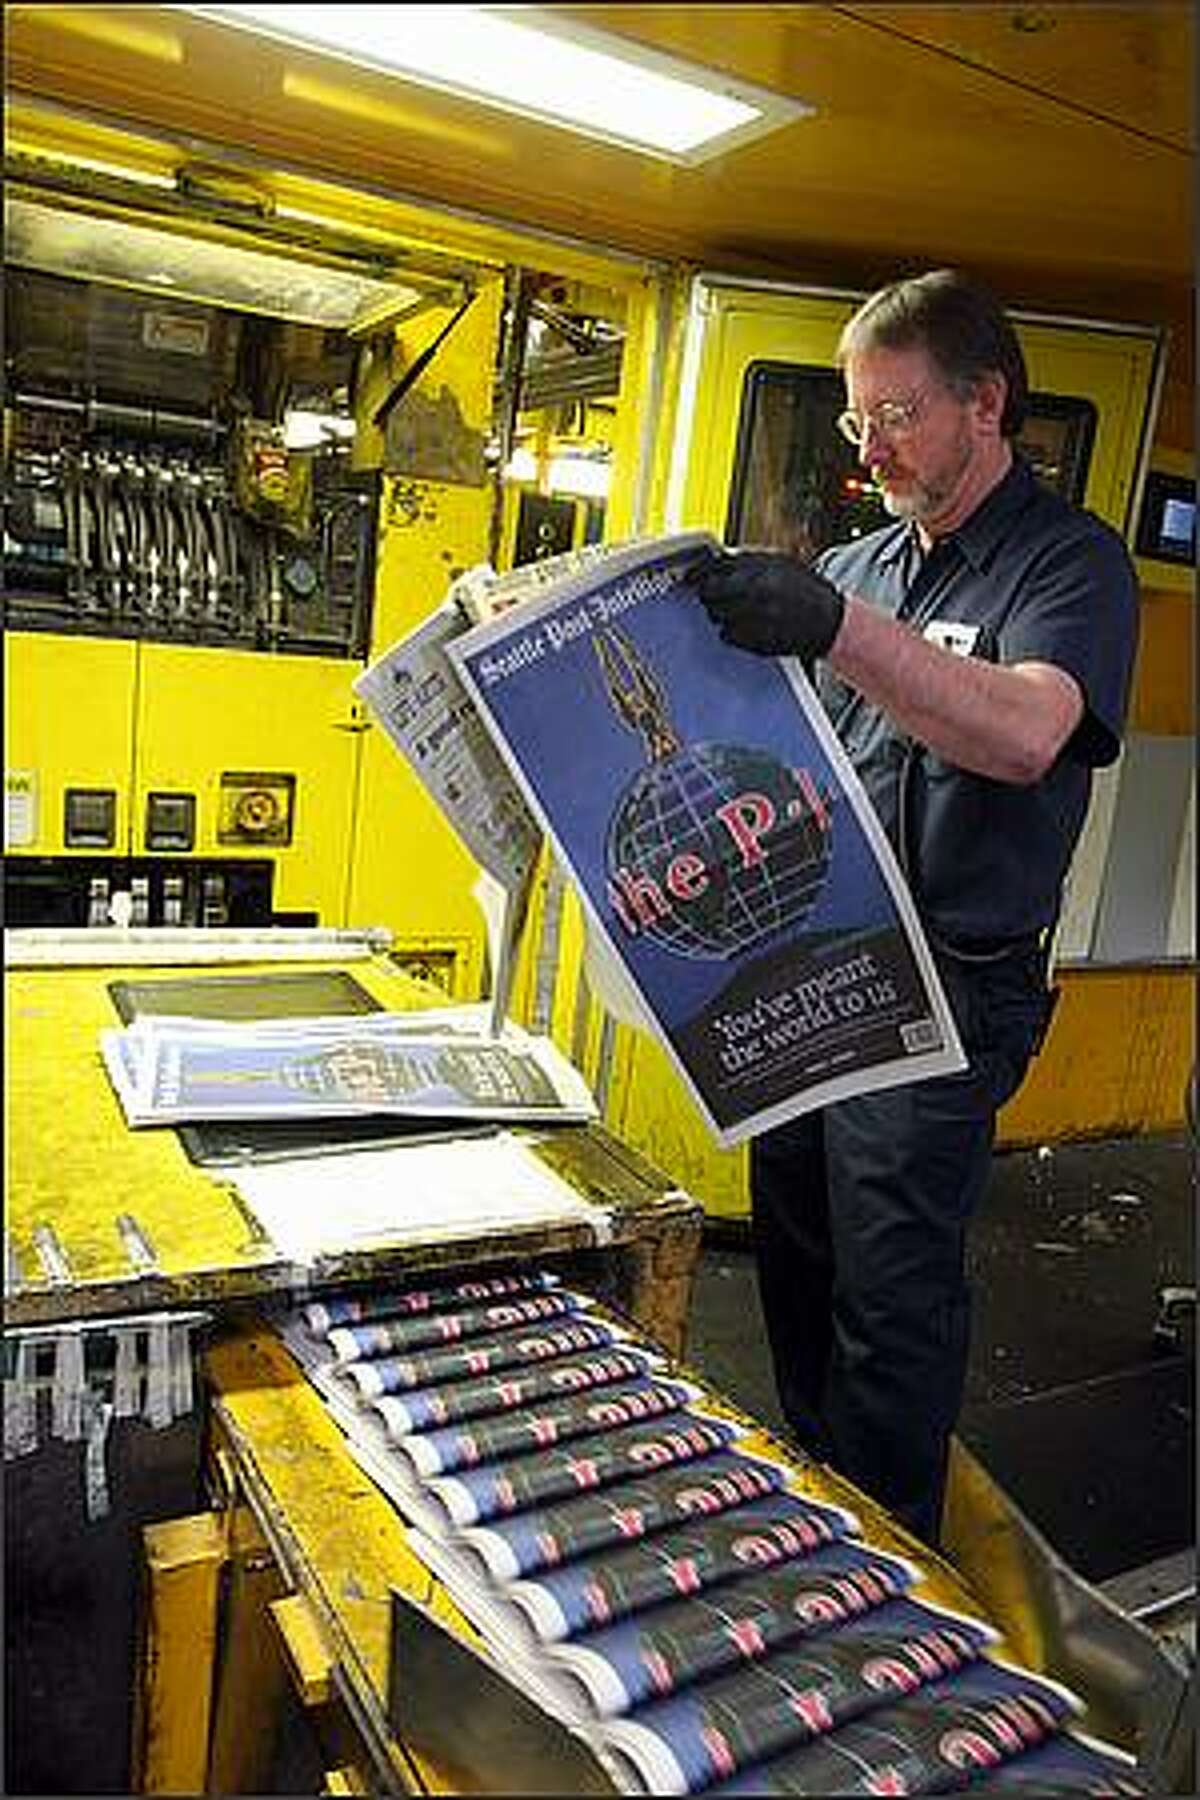 Press operator James Herron checks folios, cut offs, and color of the final edition of the Seattle Post-Intelligencer at the Seattle Times North Creek facility in Bothell, Washington on March 16, 2009. The Seattle Post Intelligencer has been publishing since 1863.